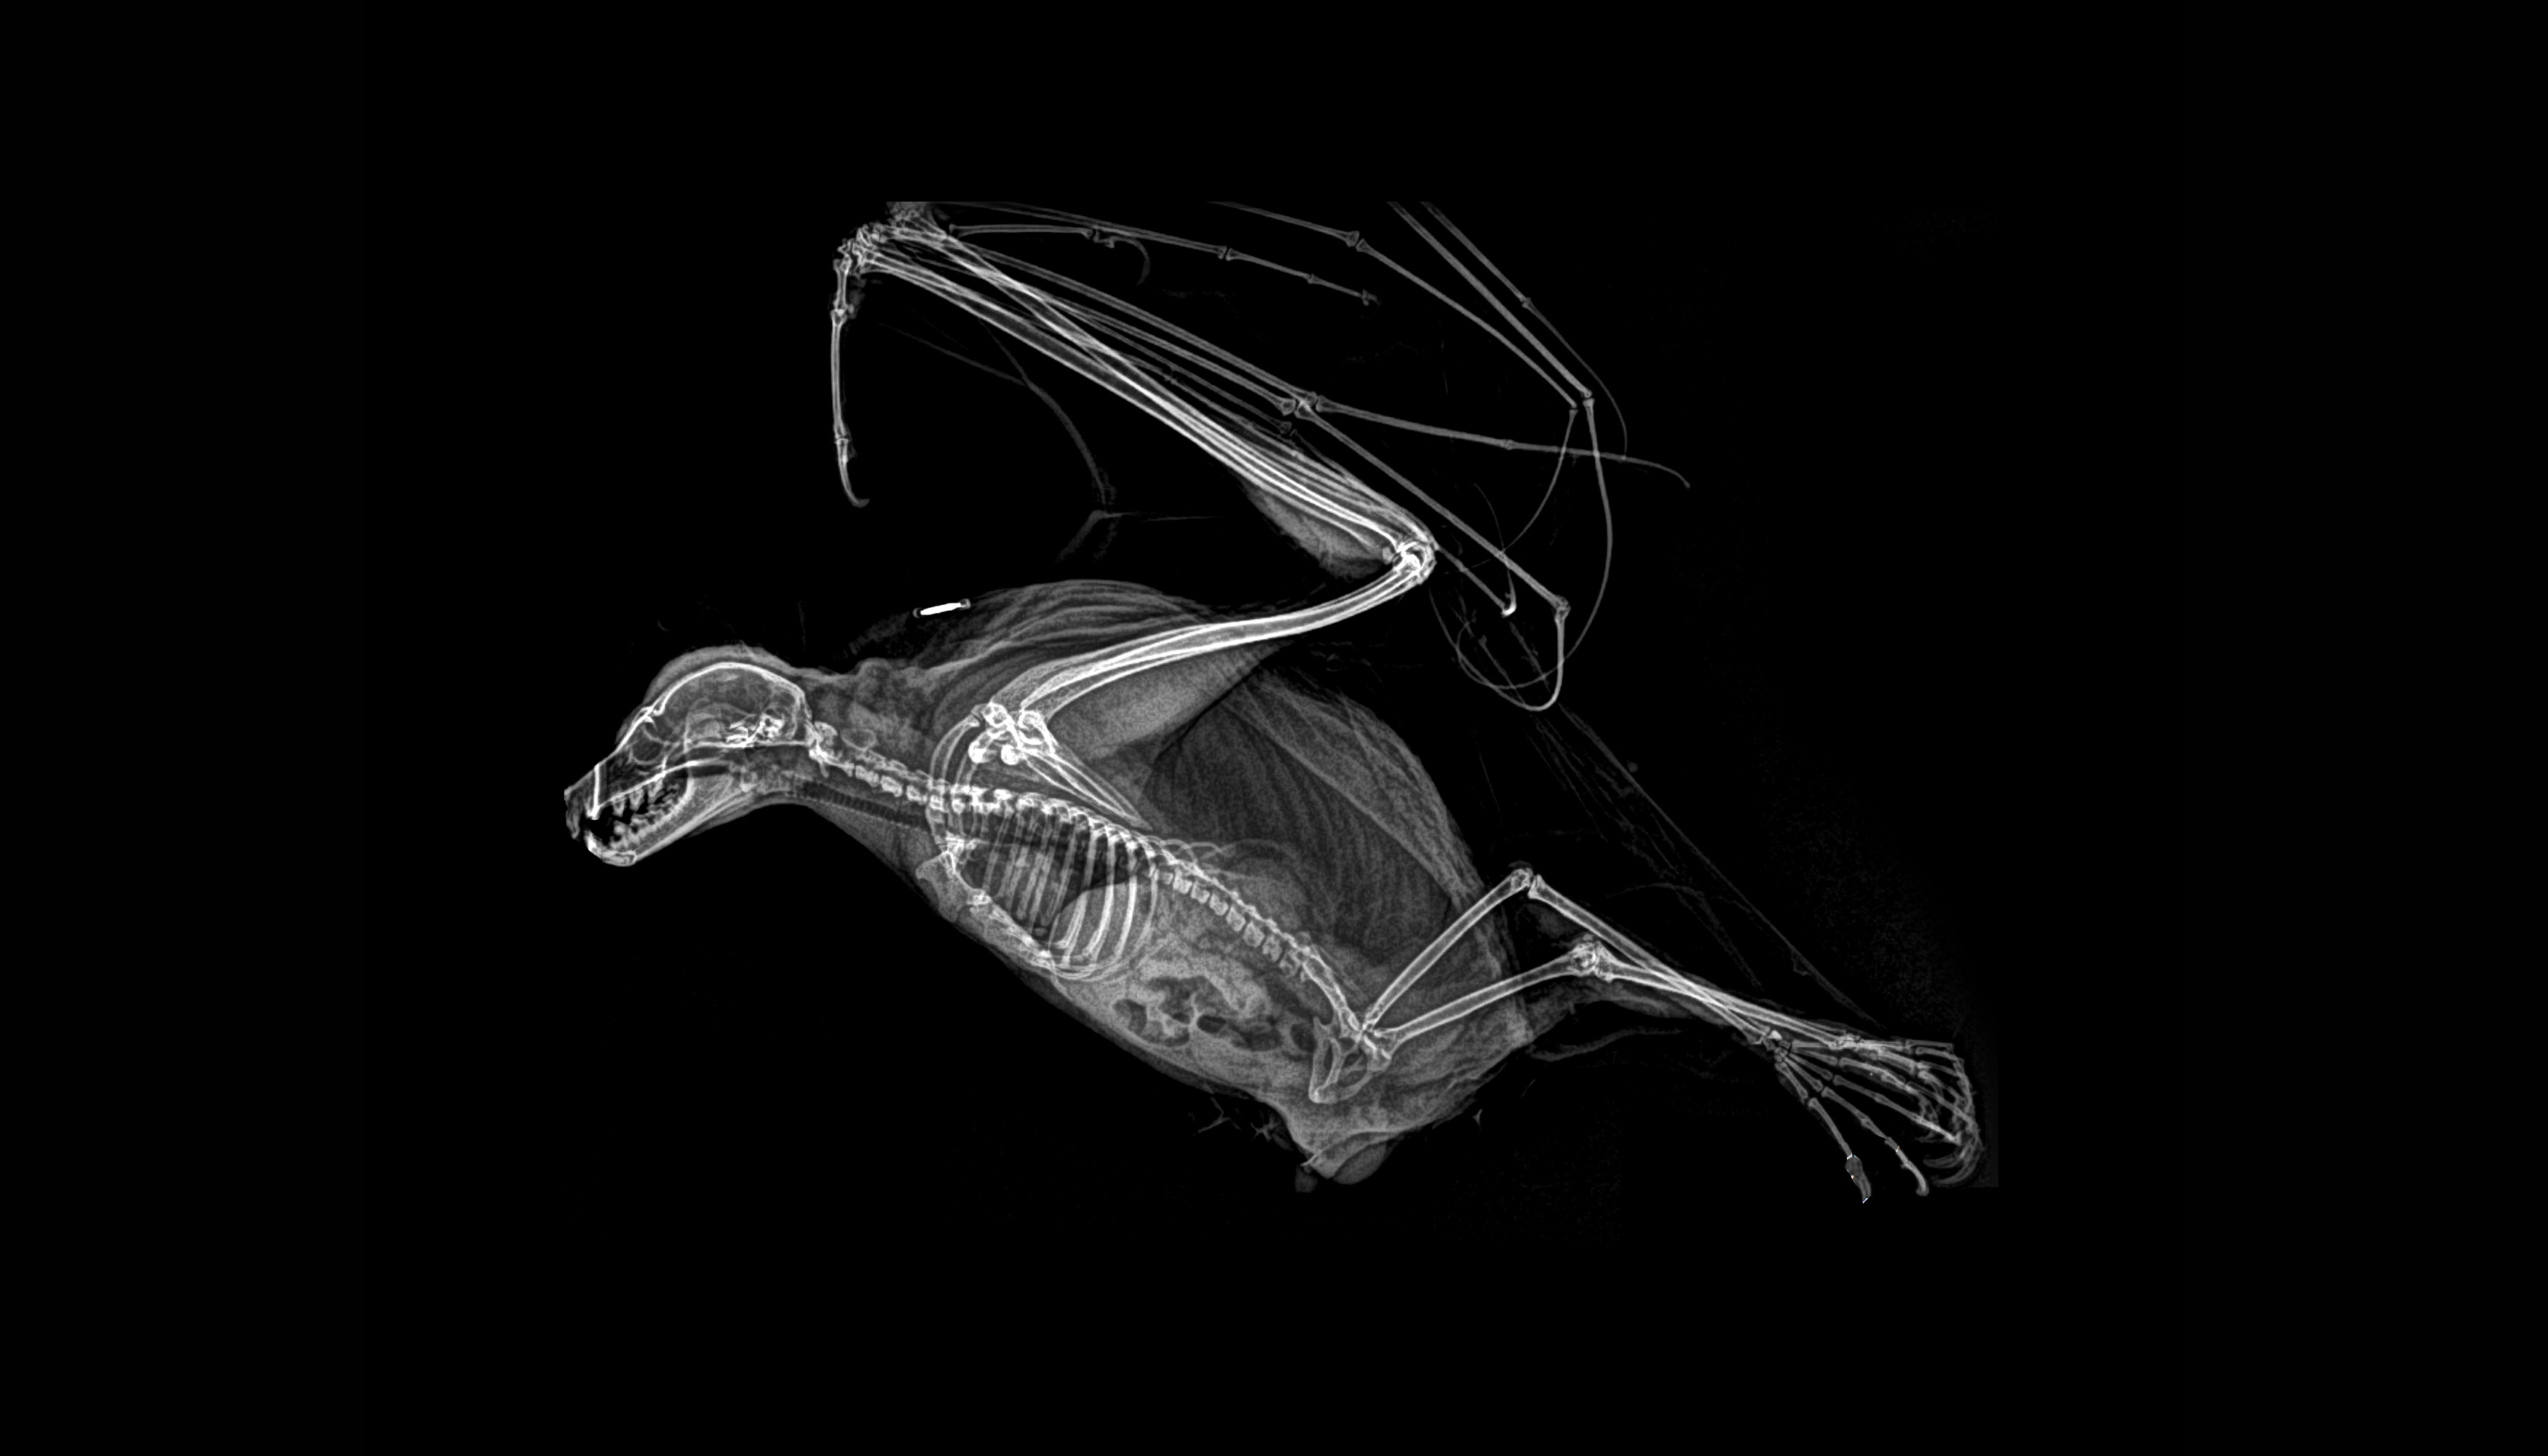 MEGAPIXELS: Spooky animal x-rays are exactly as cool as you'd imagine